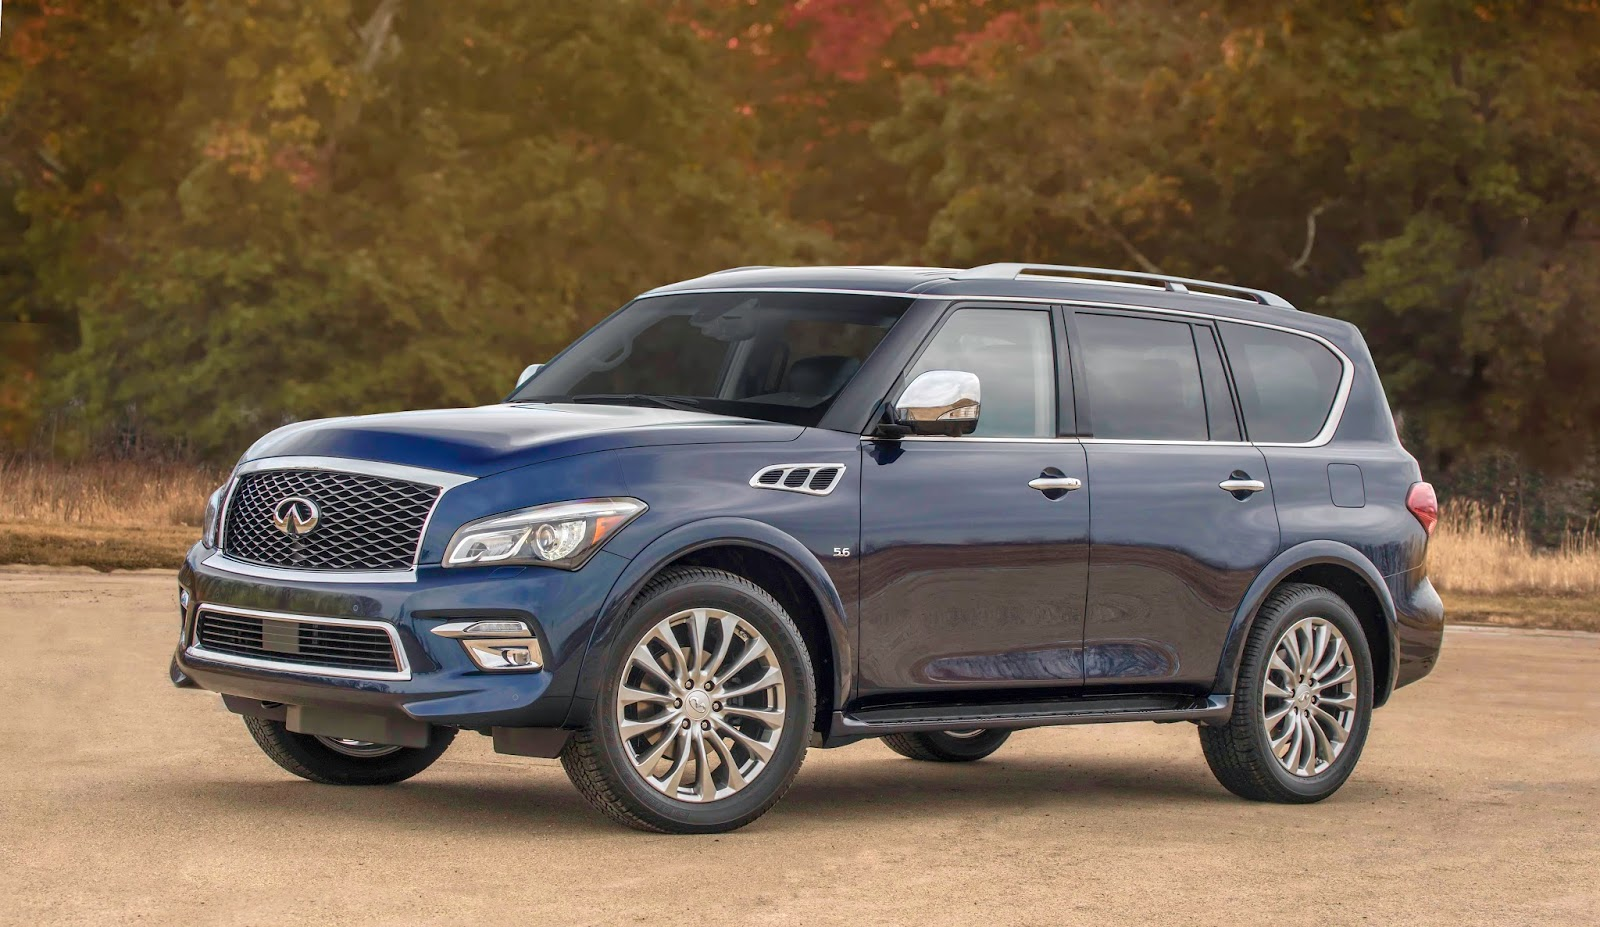 Feel the power in the upscale Infiniti QX80 sport-ute